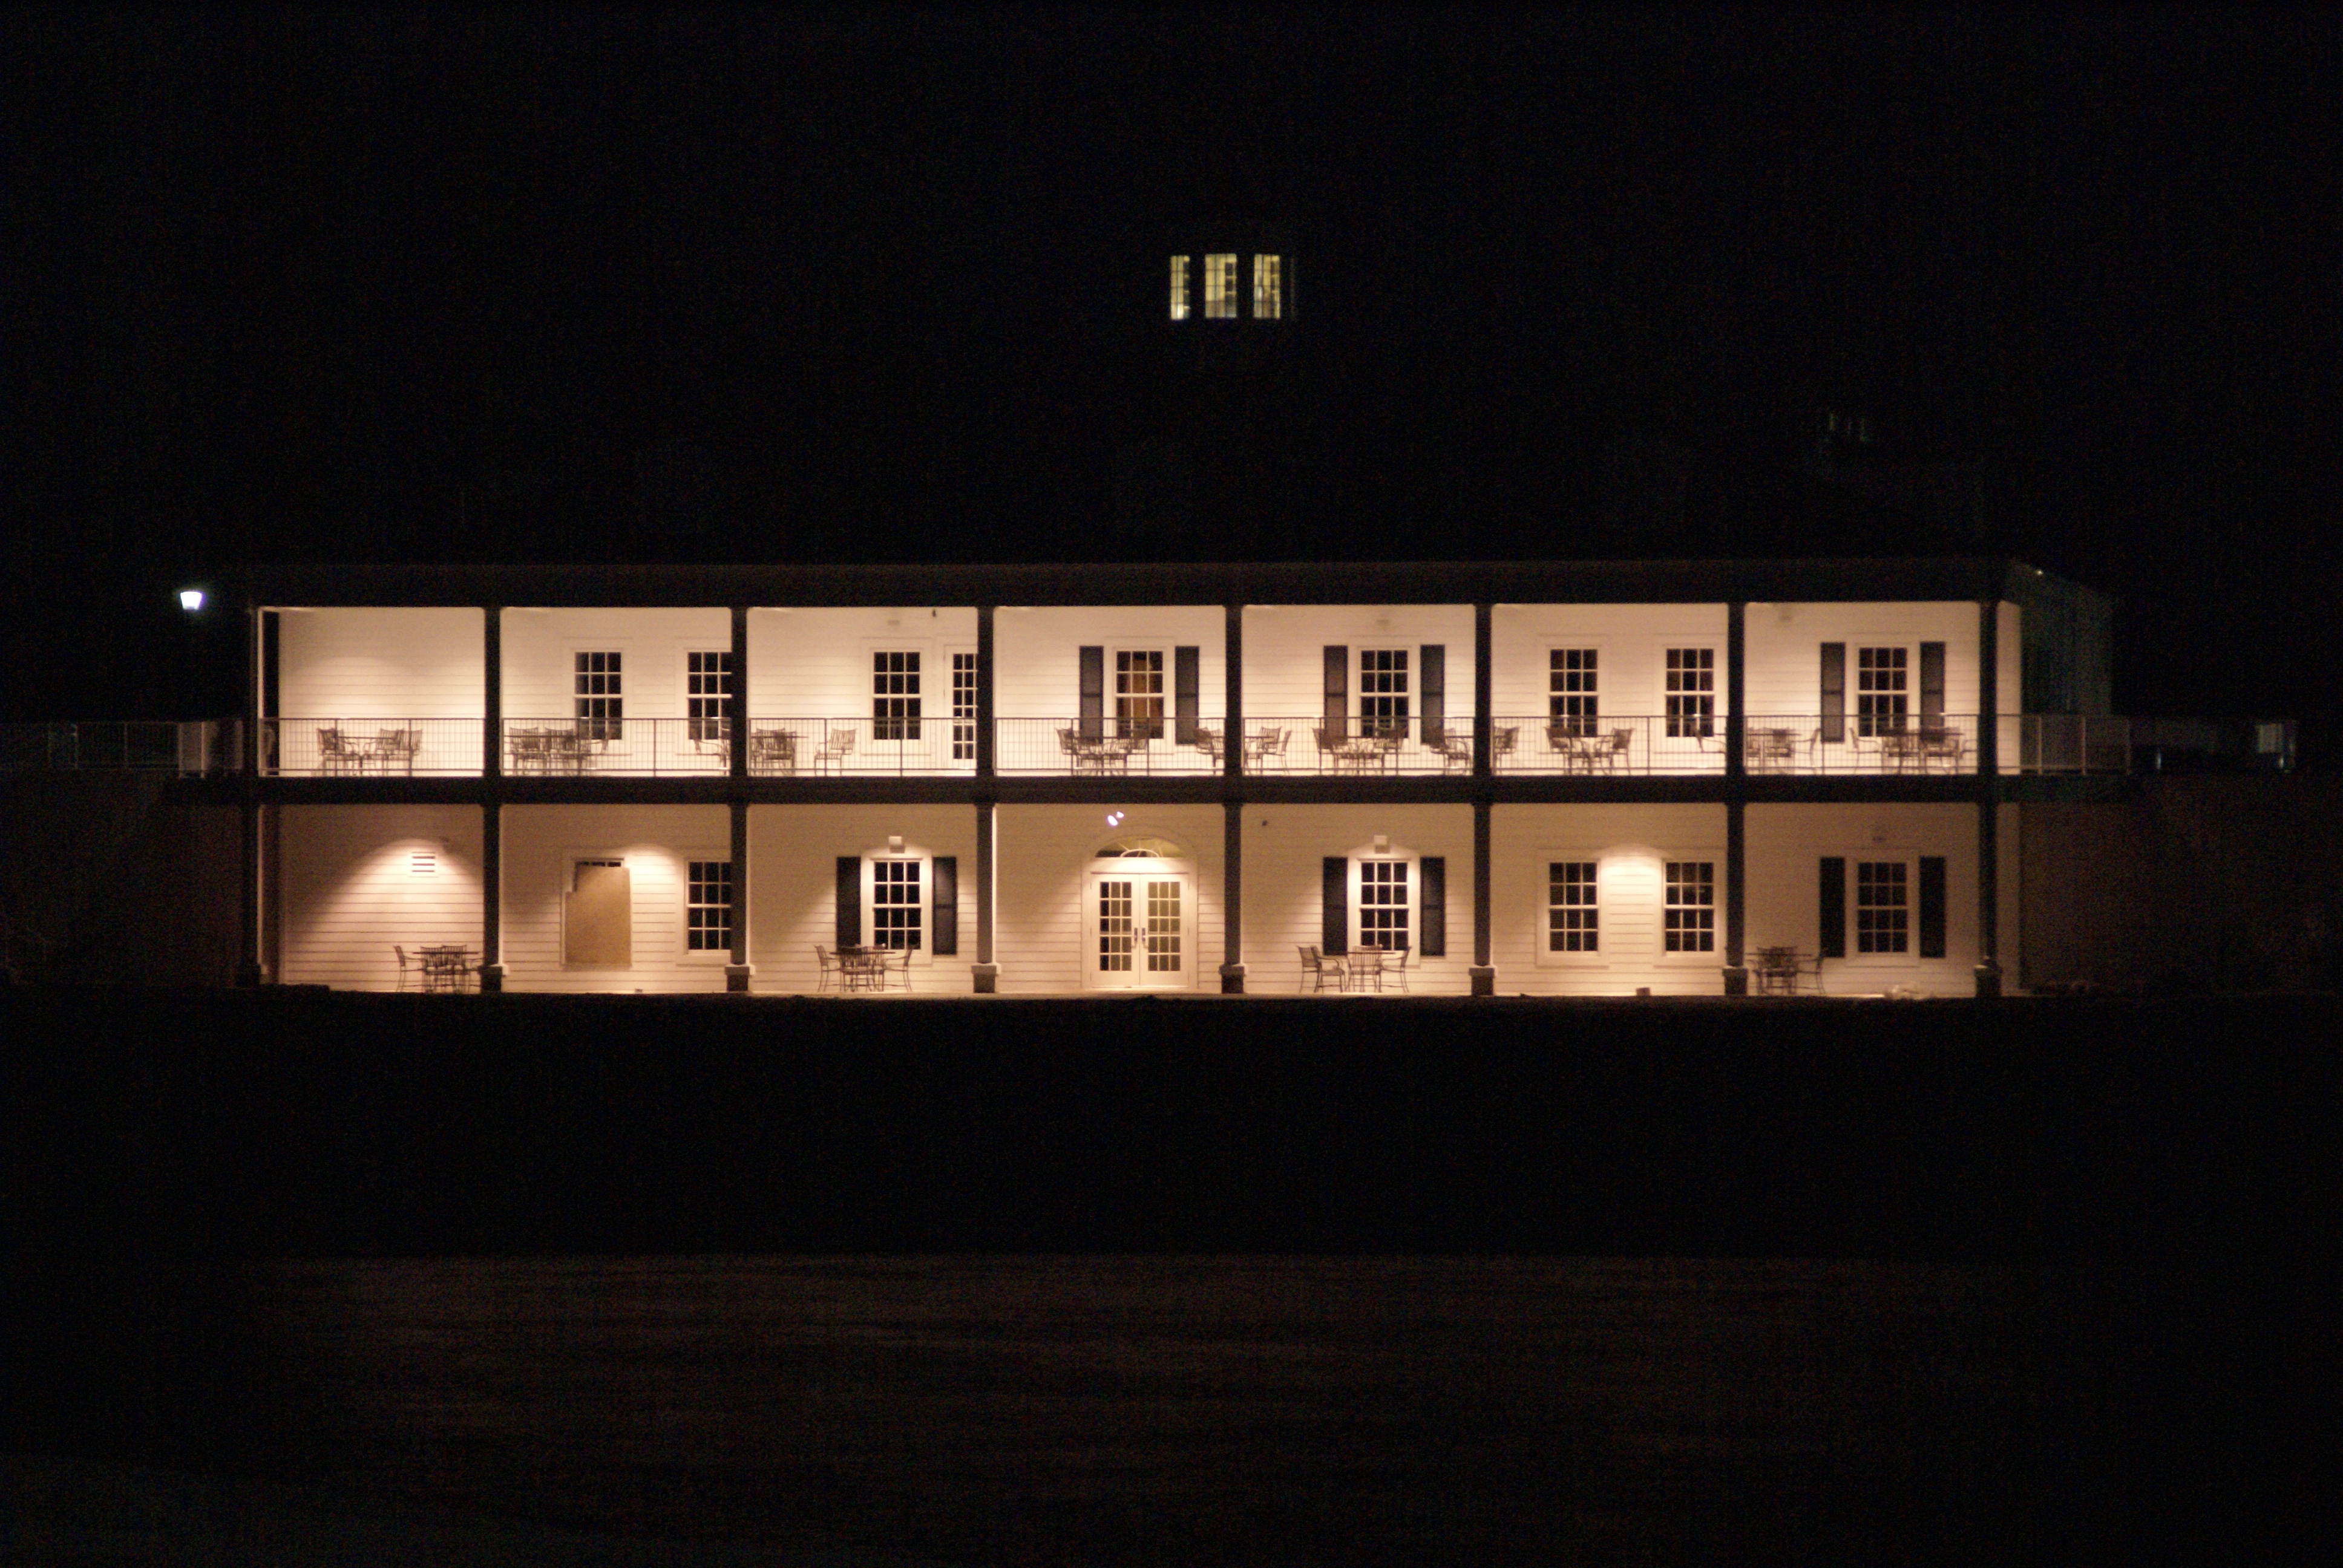 Brightly lit exterior at night